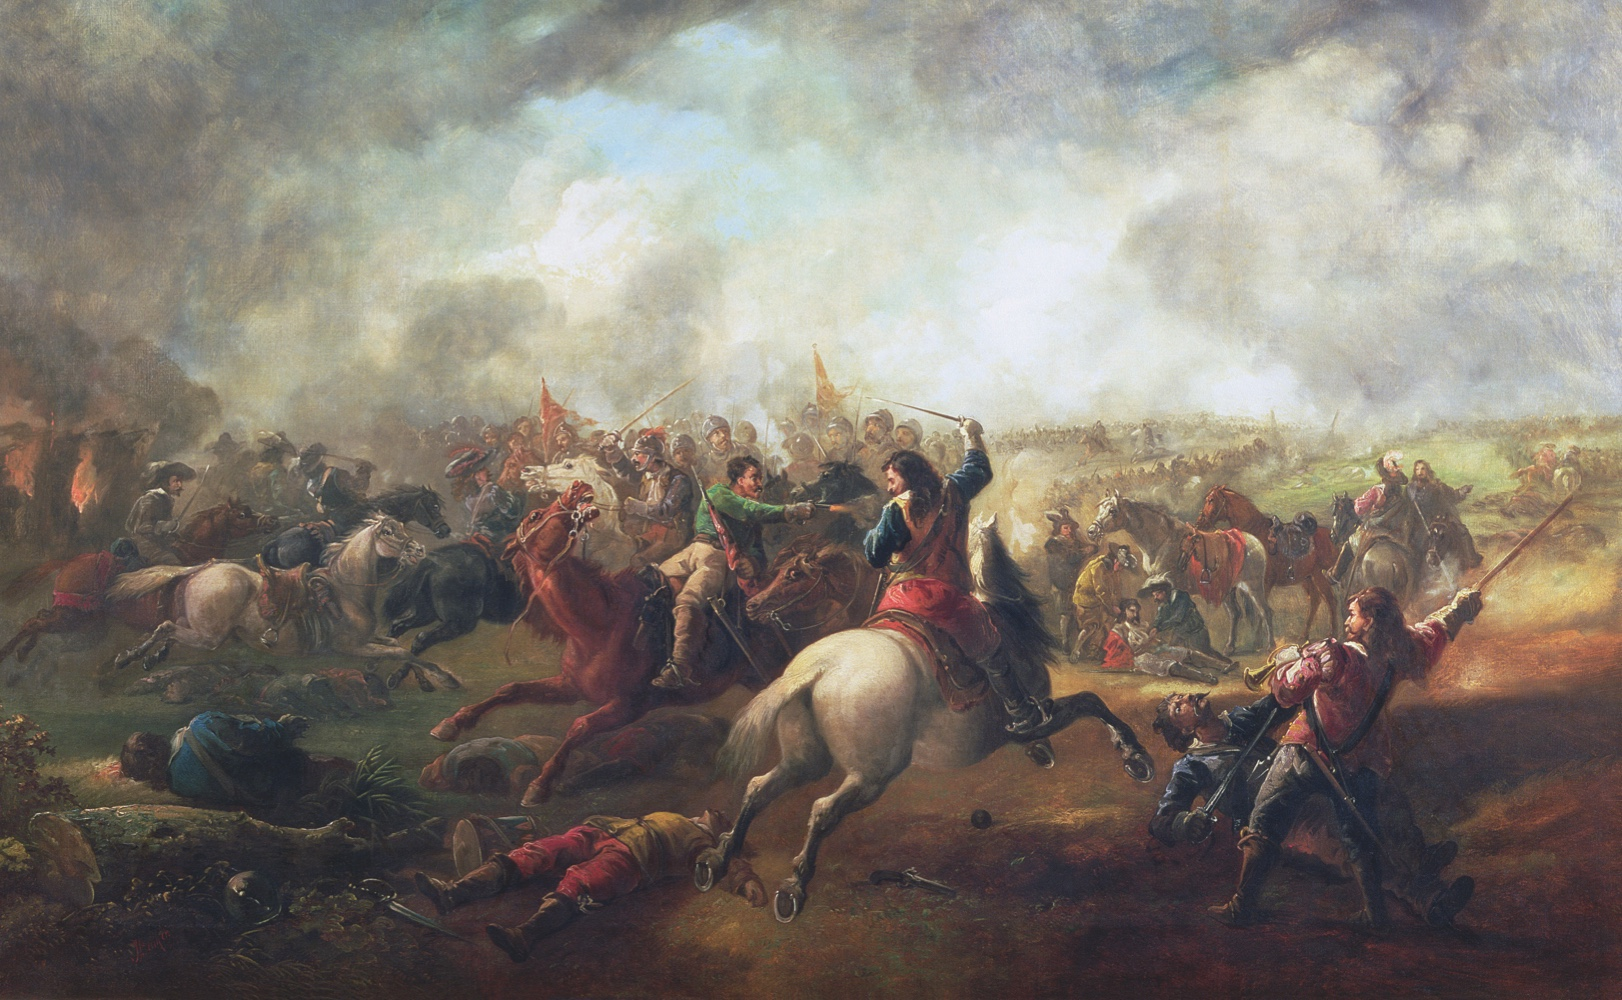 CHE18104 Battle of Marston Moor, 1644 (oil on canvas) by Barker, John (19th century); 101.6x152.5 cm; © Cheltenham Art Gallery & Museums, Gloucestershire, UK; (add.info.: English Civil War (1642-49);); PERMISSION REQUIRED FOR NON EDITORIAL USAGE; English,  out of copyright  PLEASE NOTE: Bridgeman Images works with the owner of this image to clear permission. If you wish to reproduce this image, please inform us so we can clear permission for you.